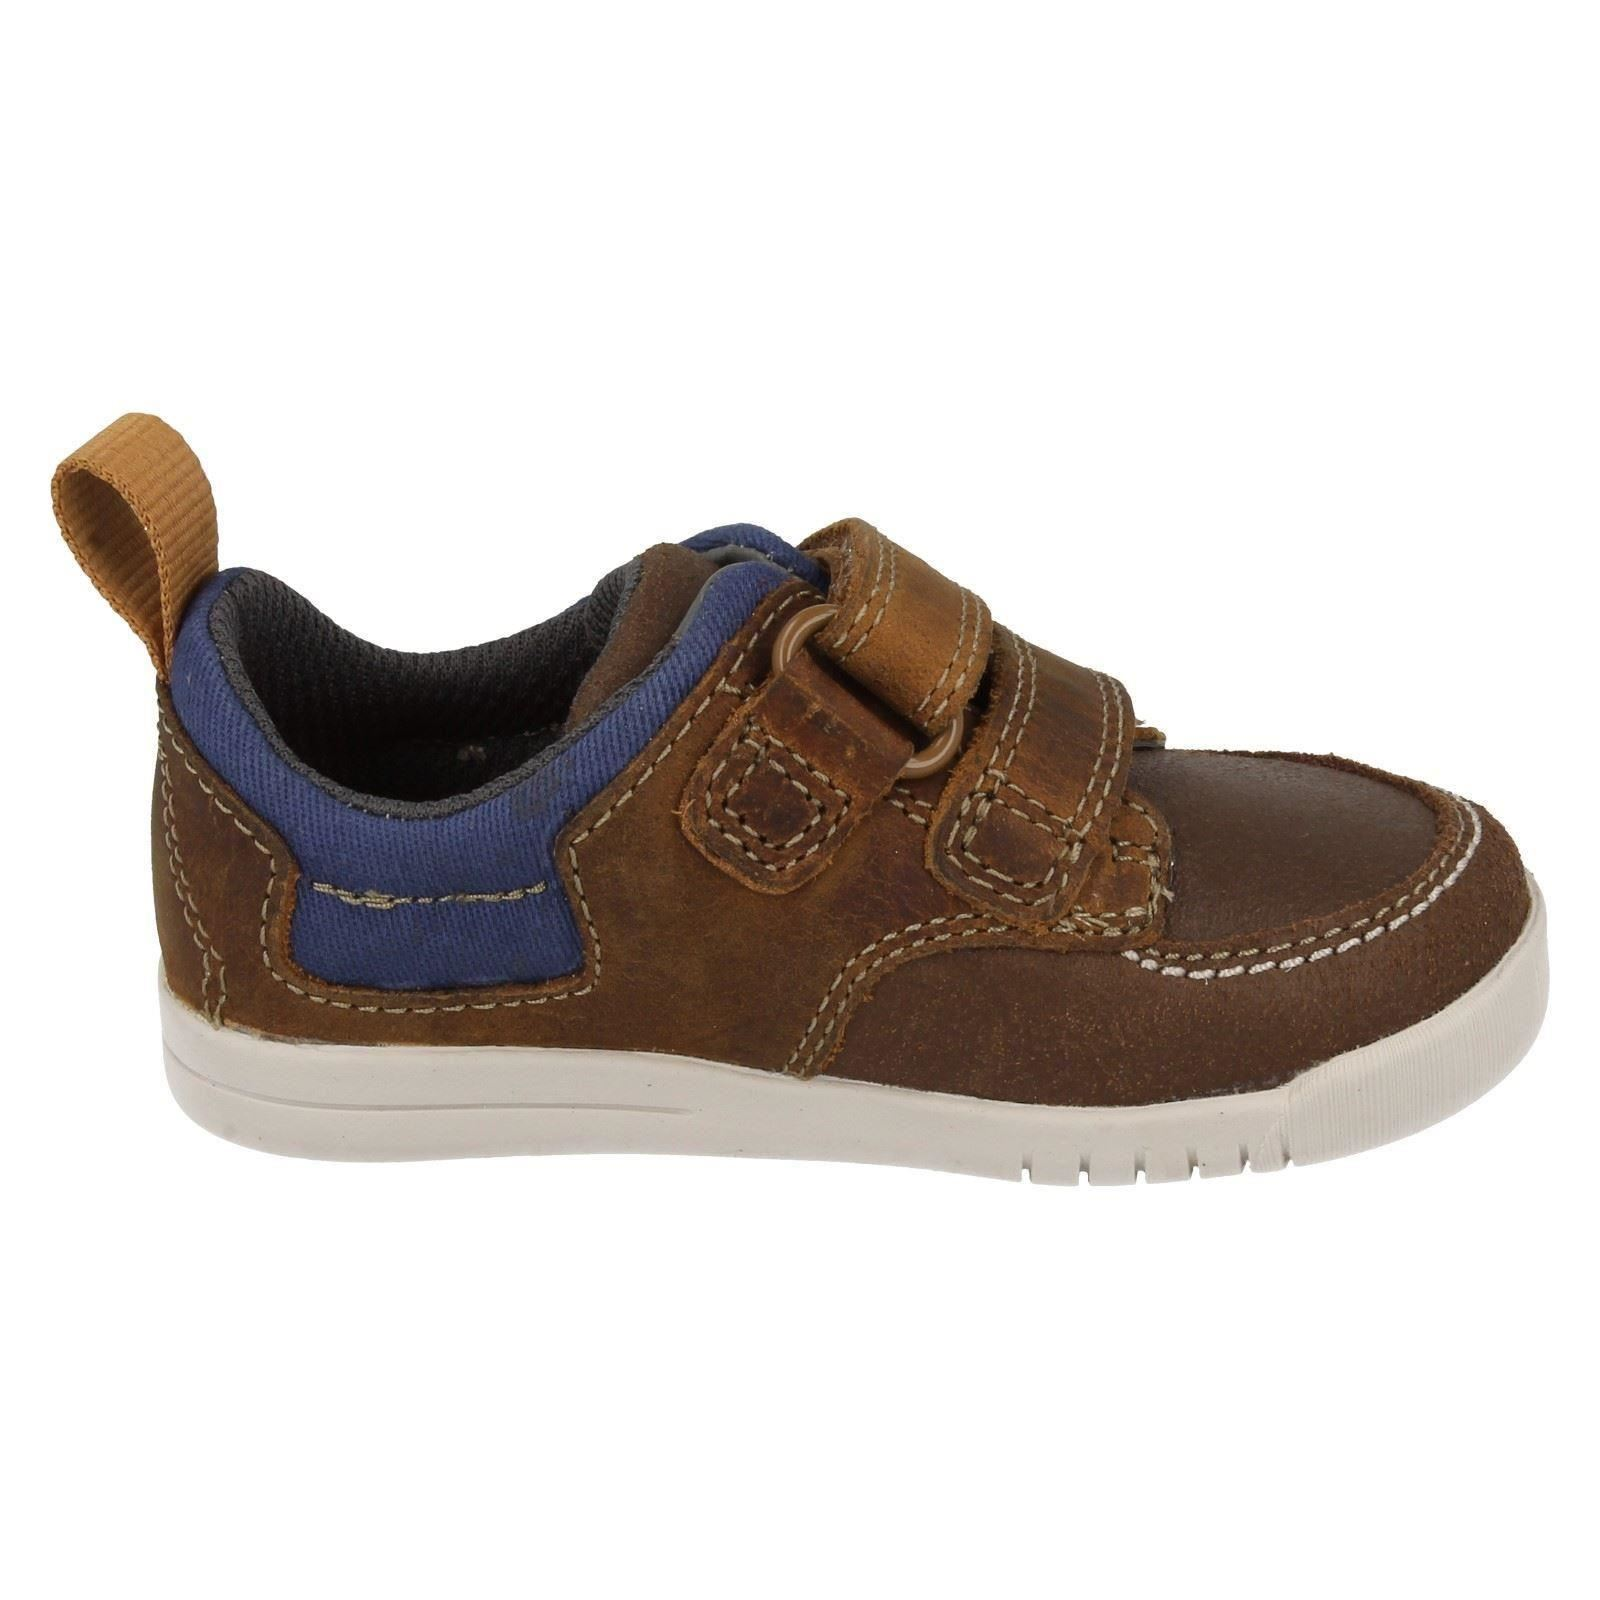 Infant Boys Clarks First Casual Shoes Crazy Jay | eBay